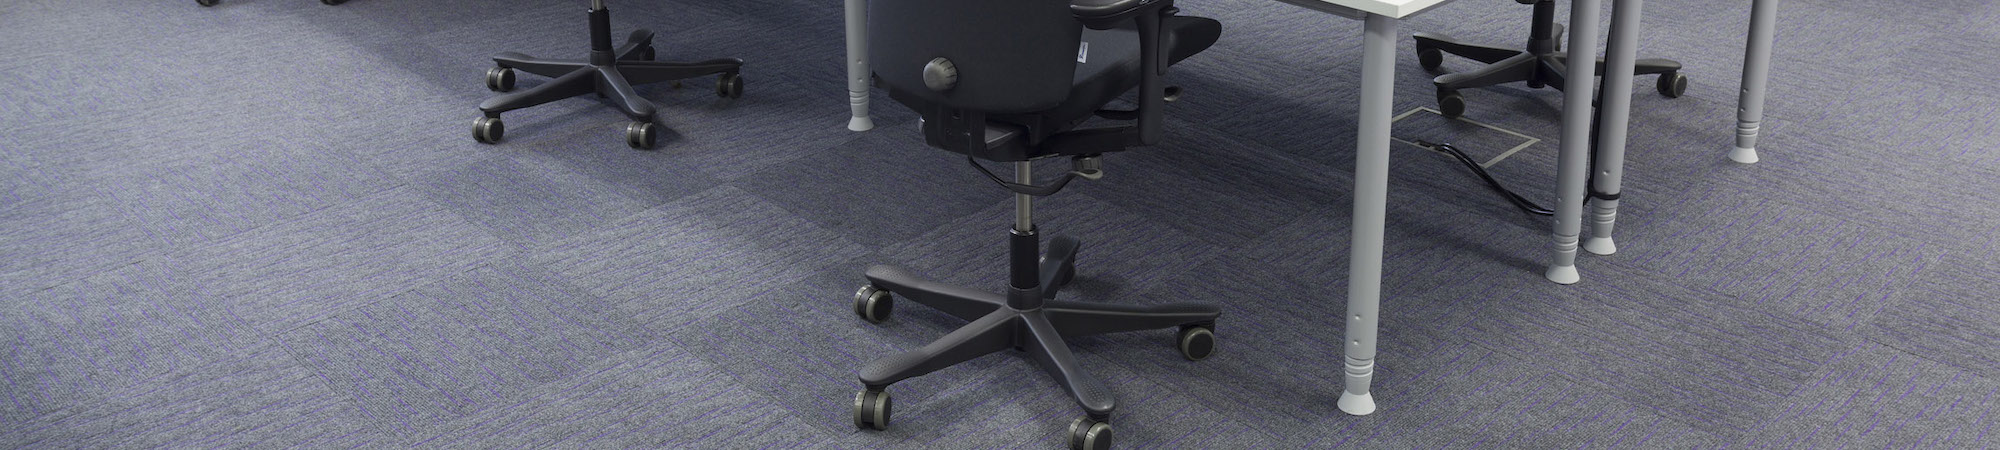 Array | Heckmondwike FB | Commercial Carpets | Featured Image